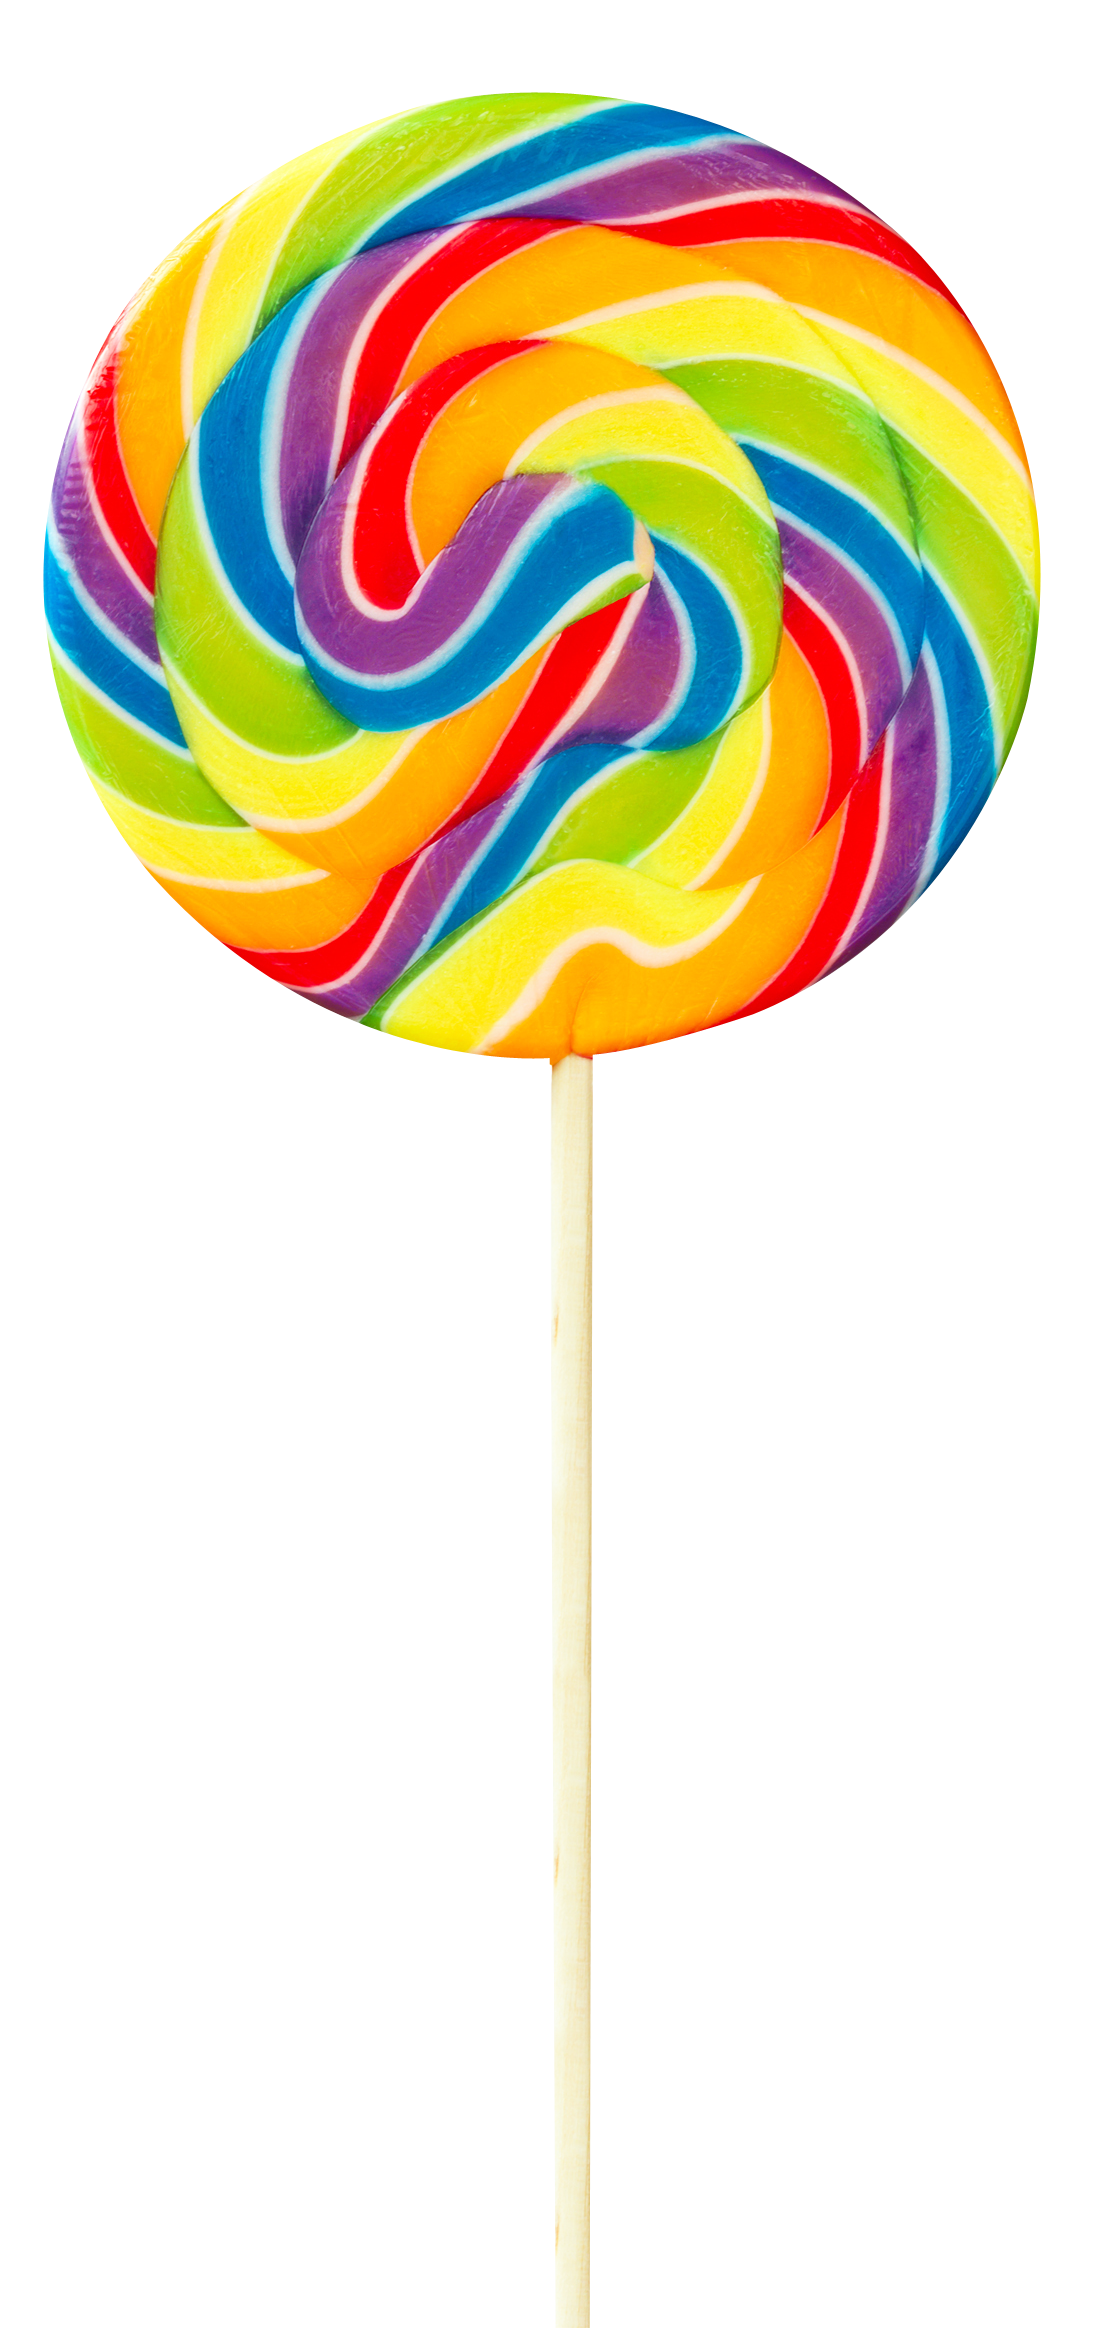 transparent lollipop circular